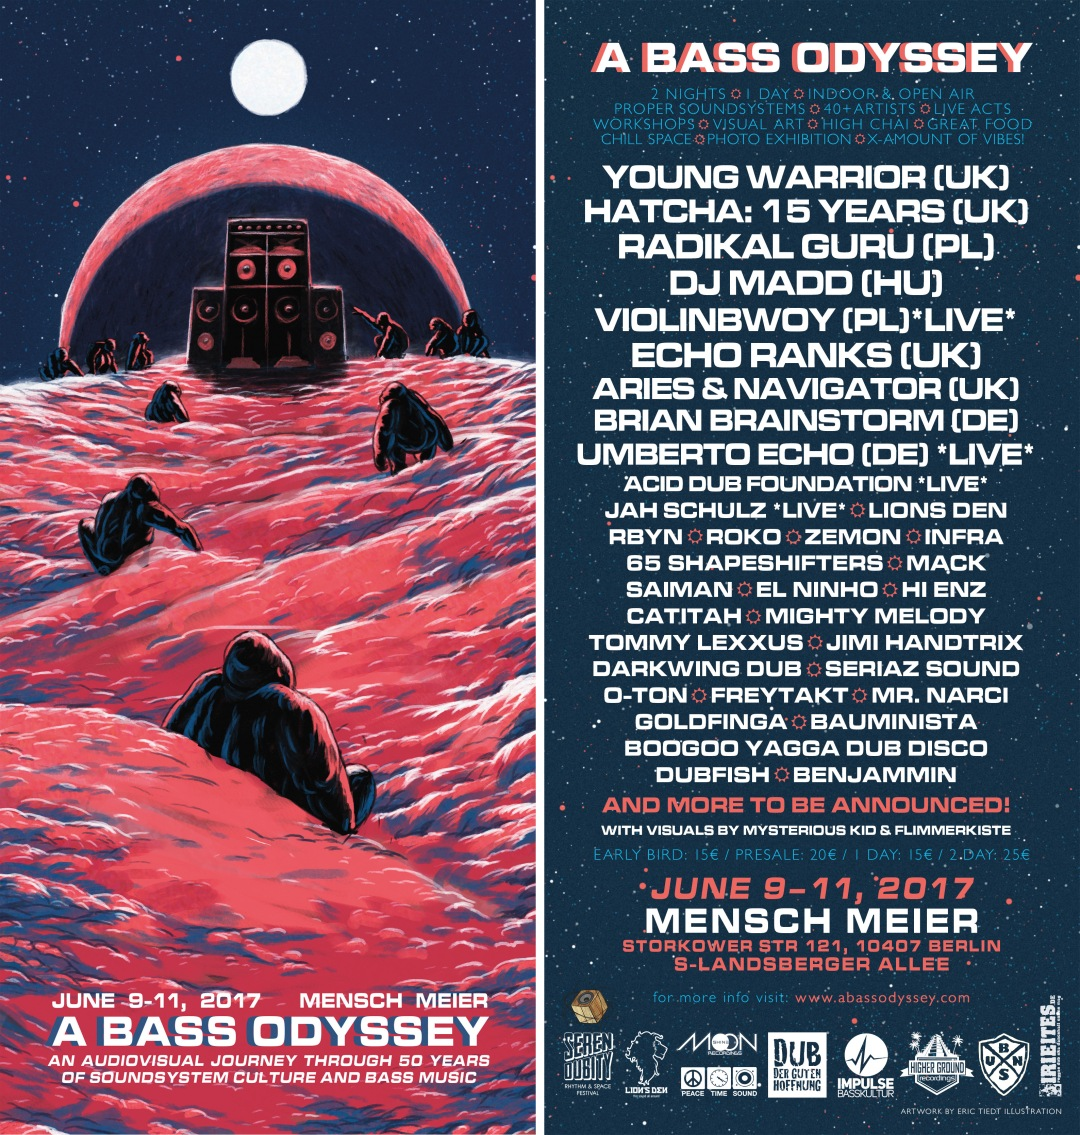 A Bass Odyssey - Flyer (Front & Back) - WEB - RGB